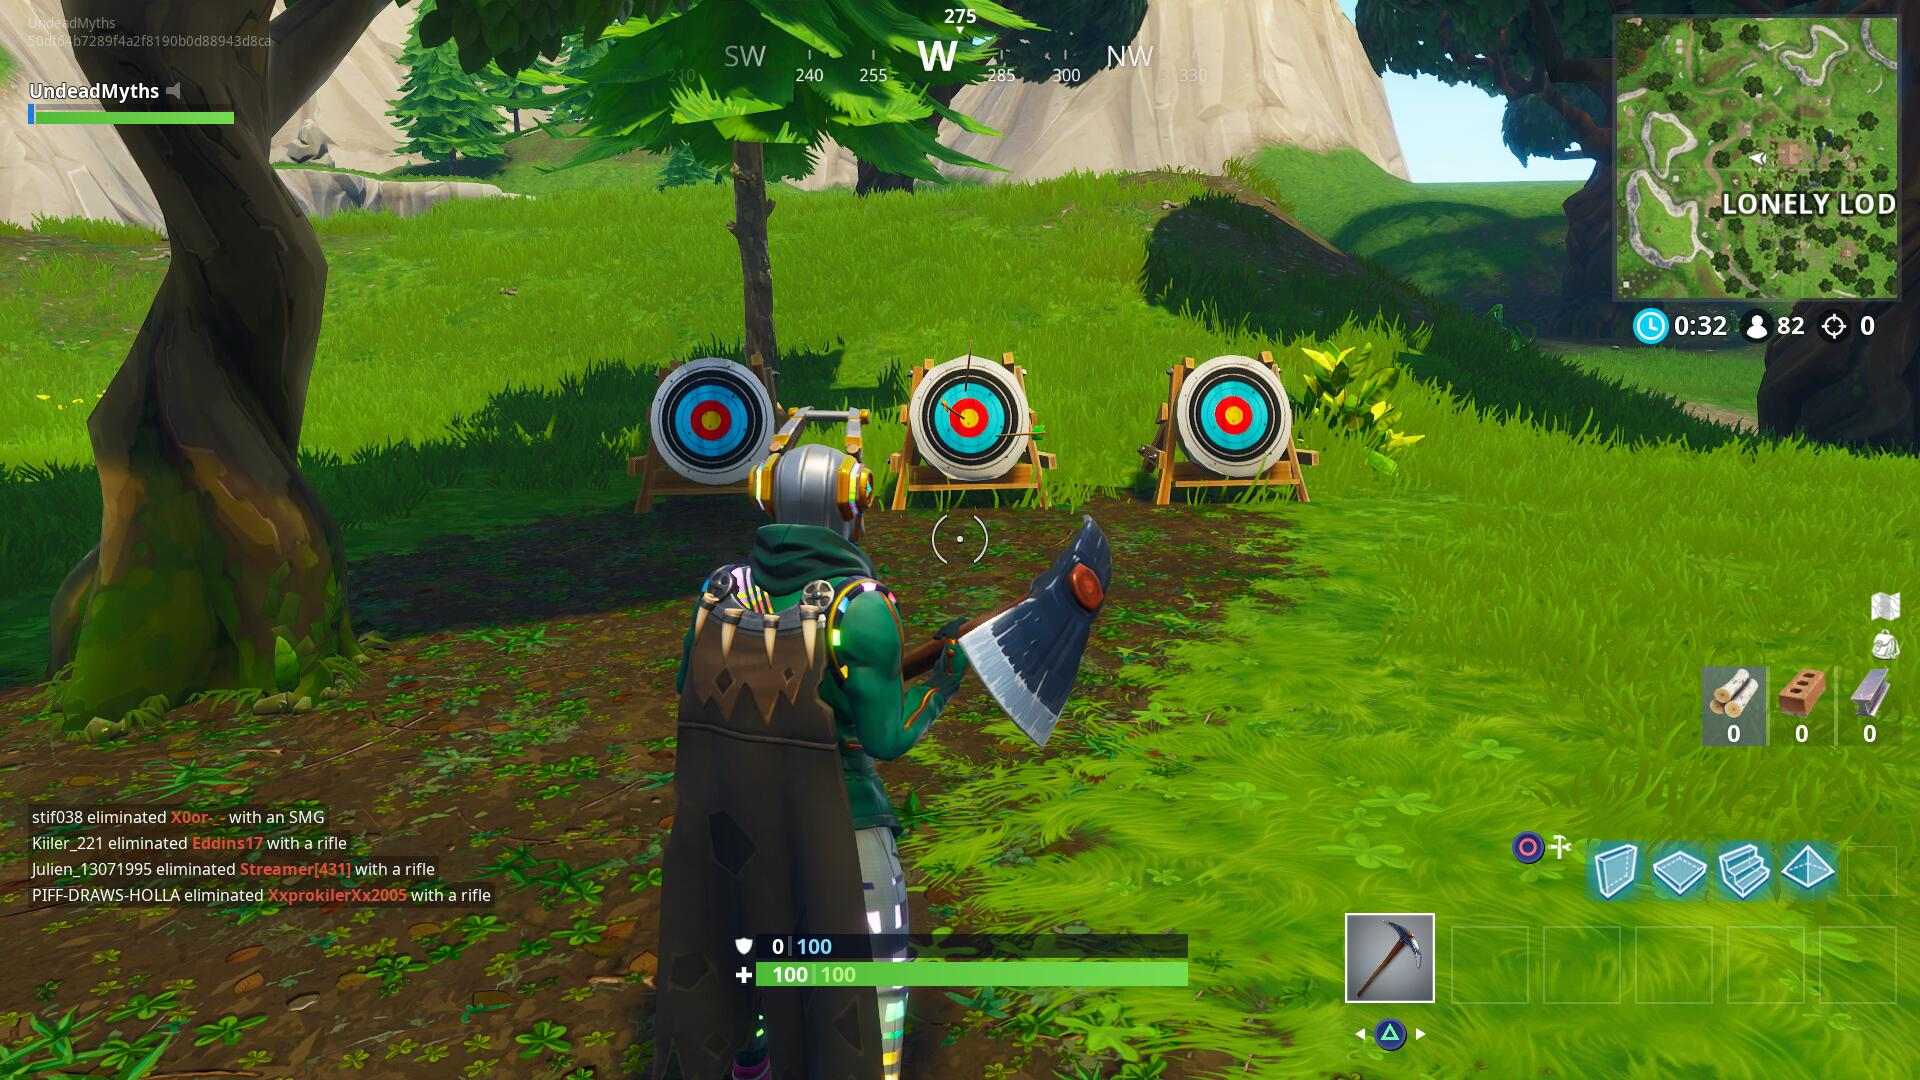 Fortnite Shooting Galleries Locations